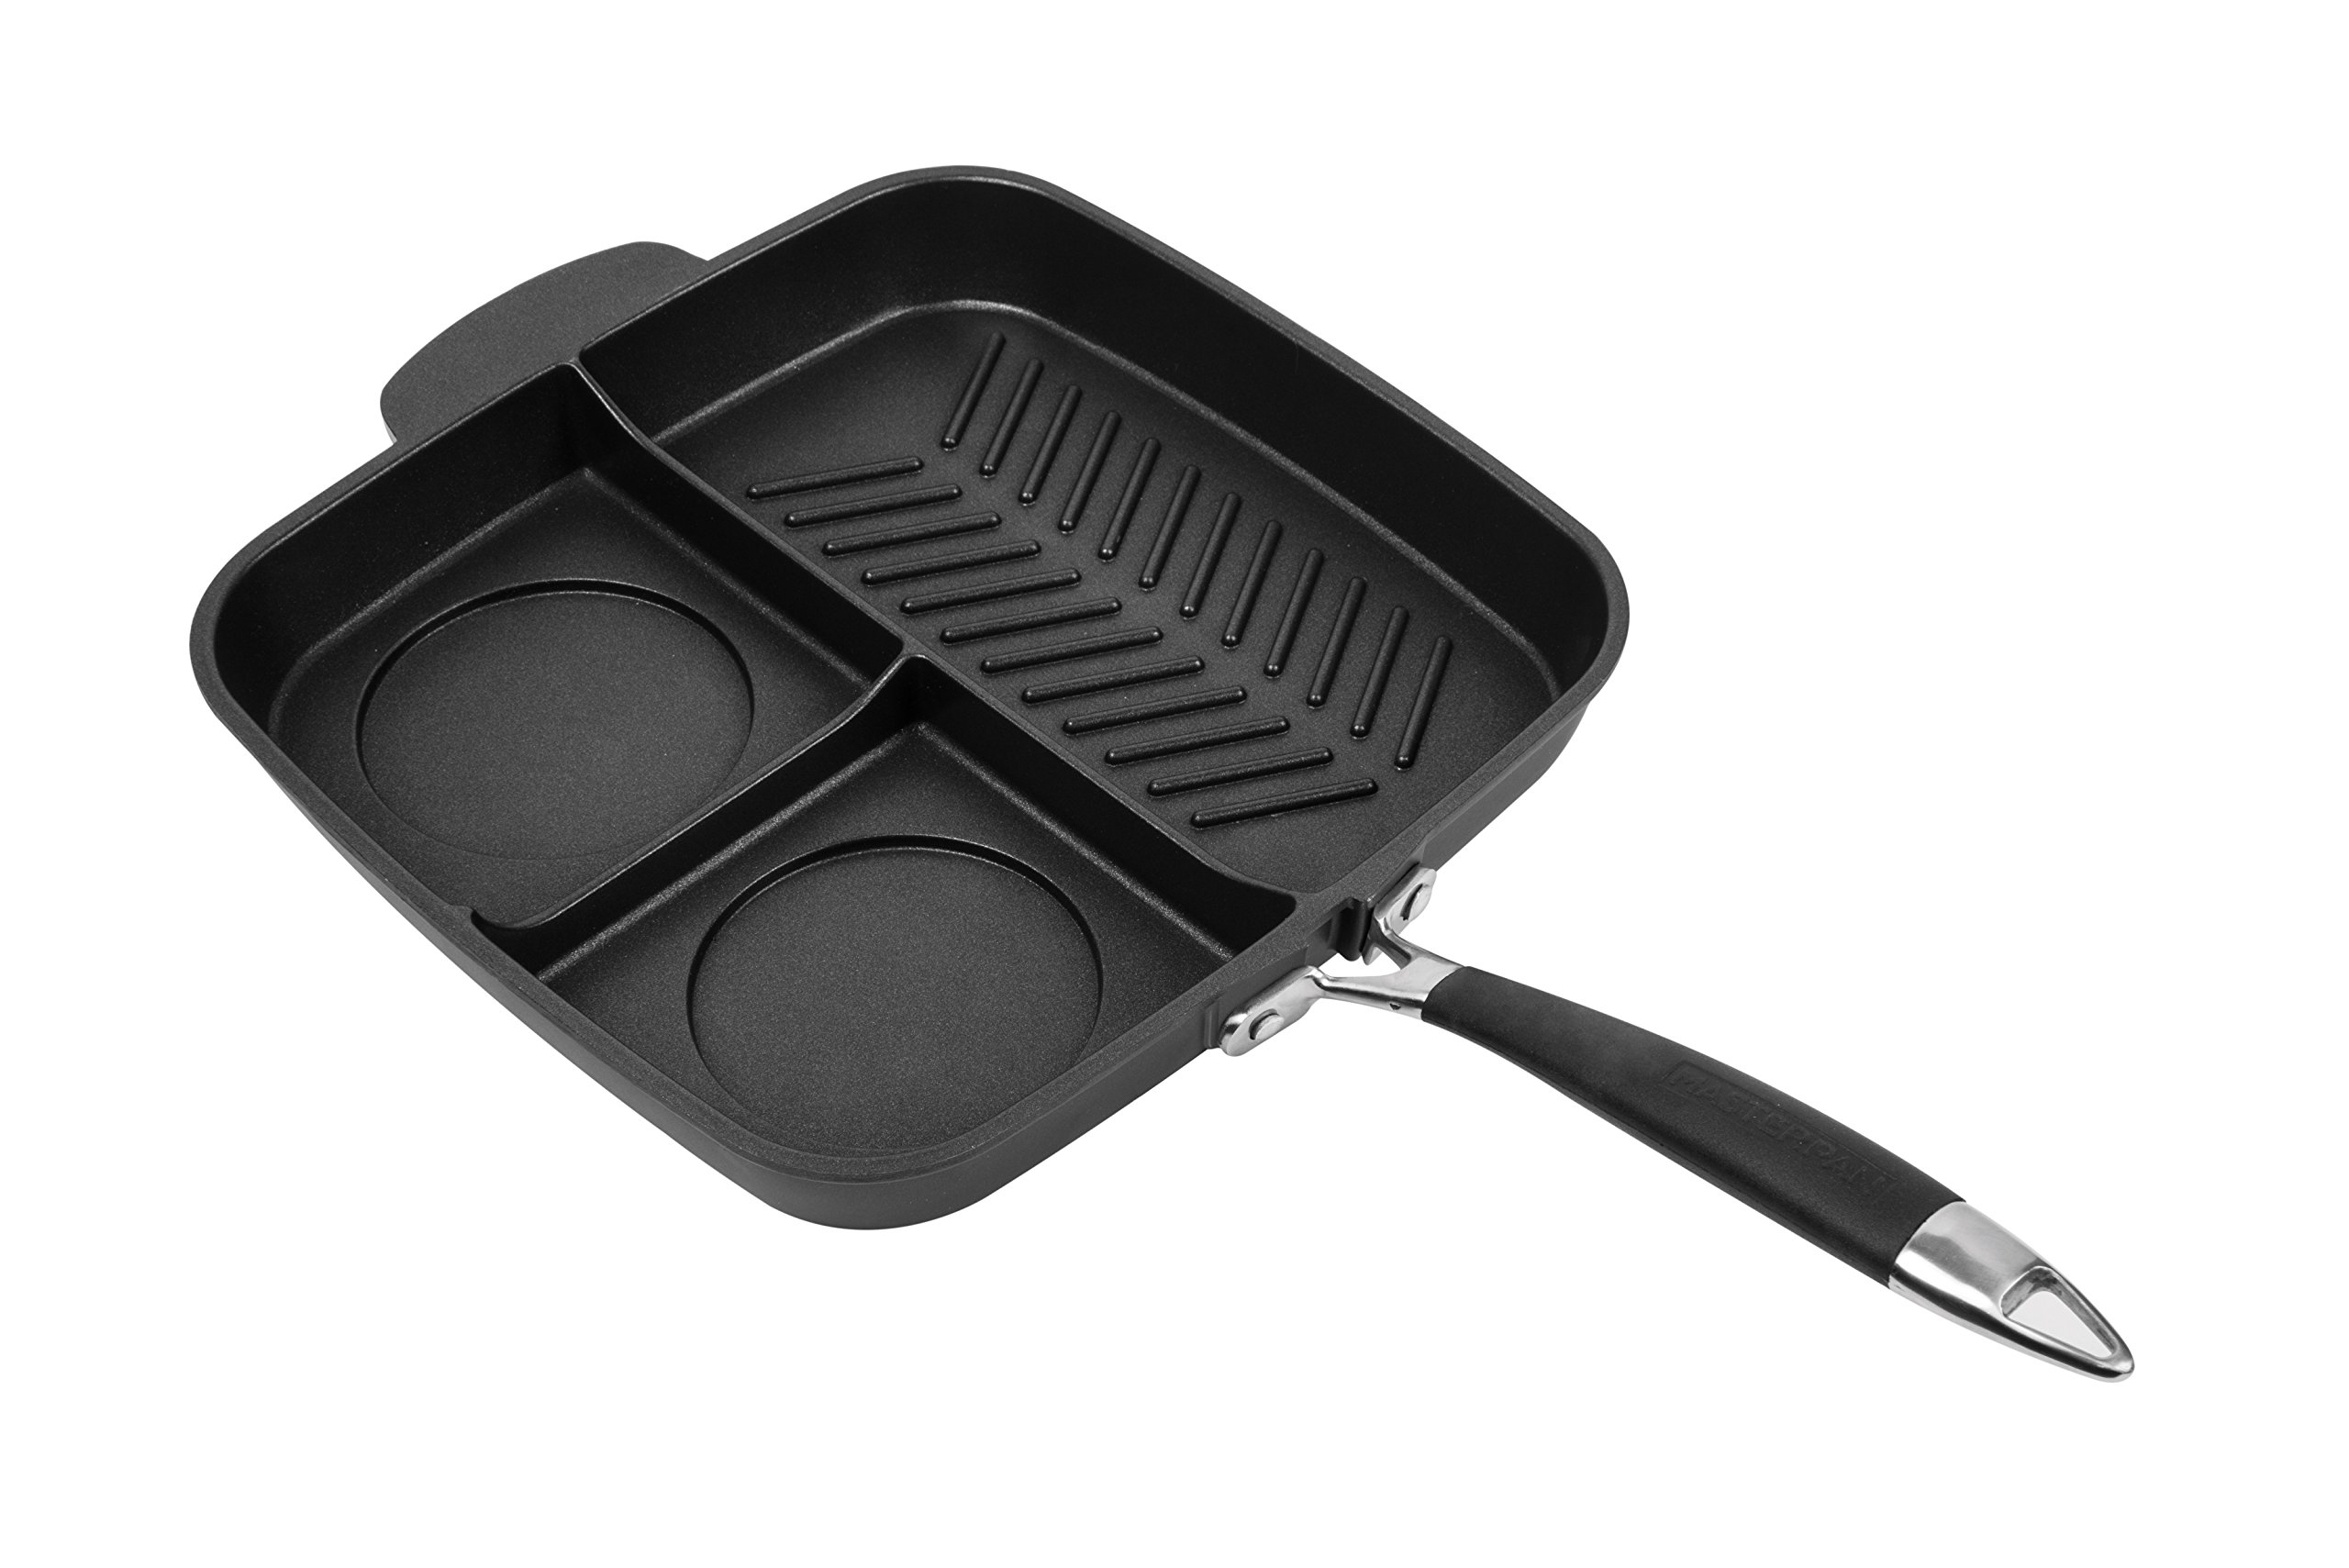 MasterPan Non-Stick 3 Section Meal Skillet, 11'', Black